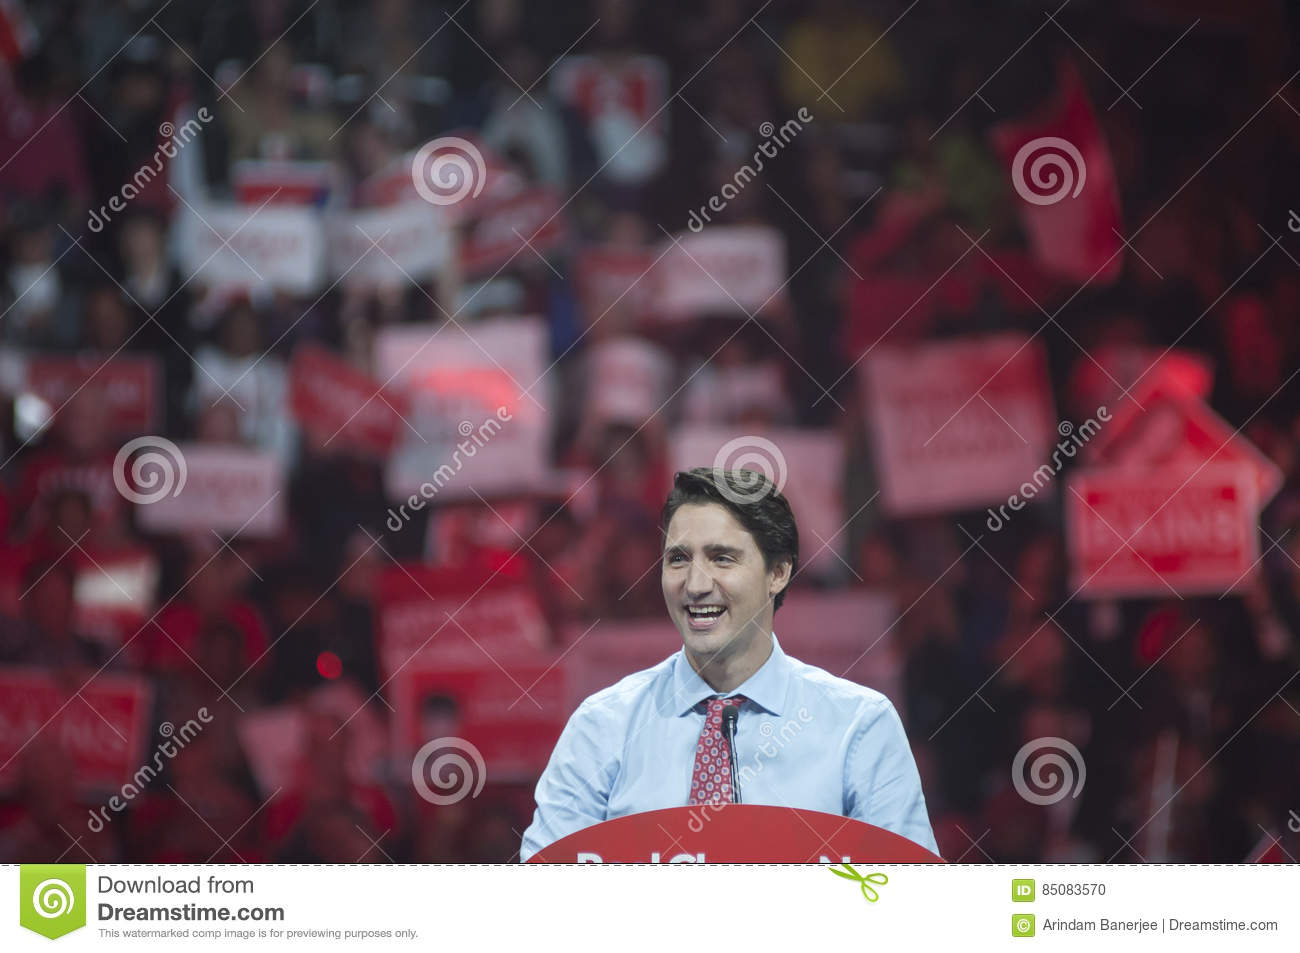 Justin Trudeau election rally